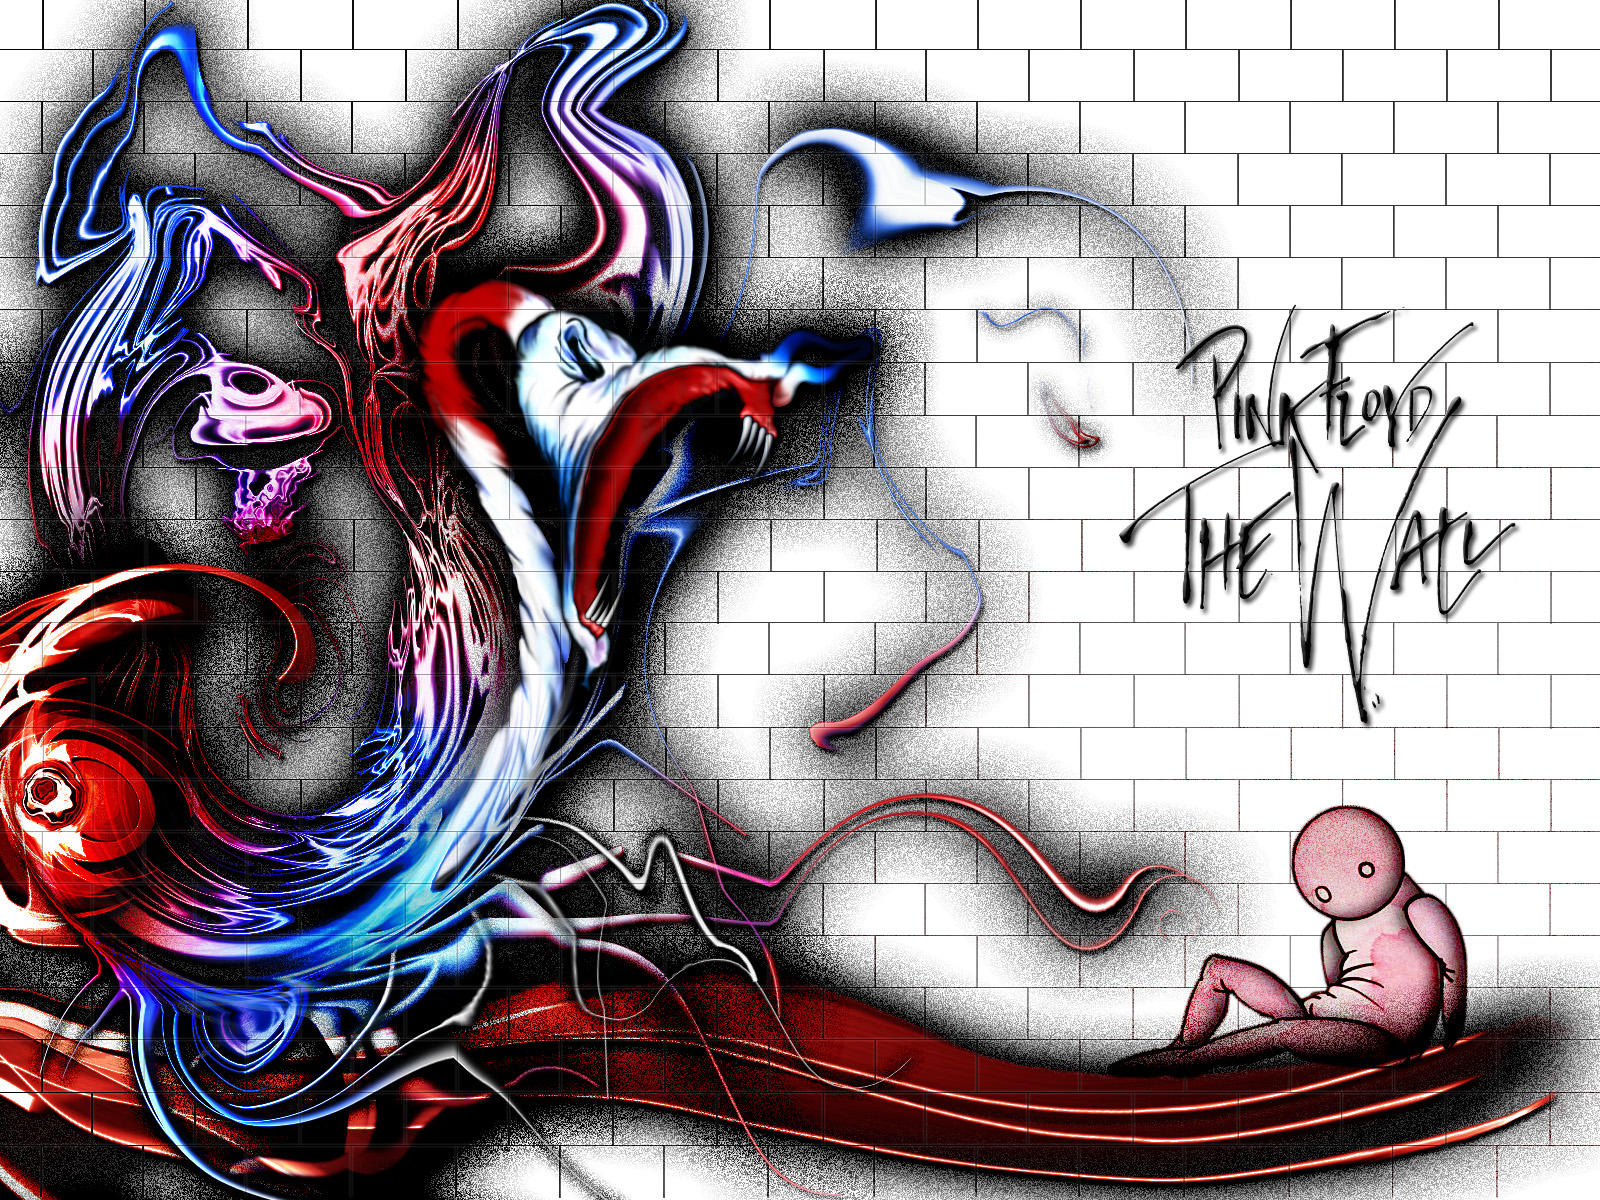 Pink Floyd the Wall Artwork